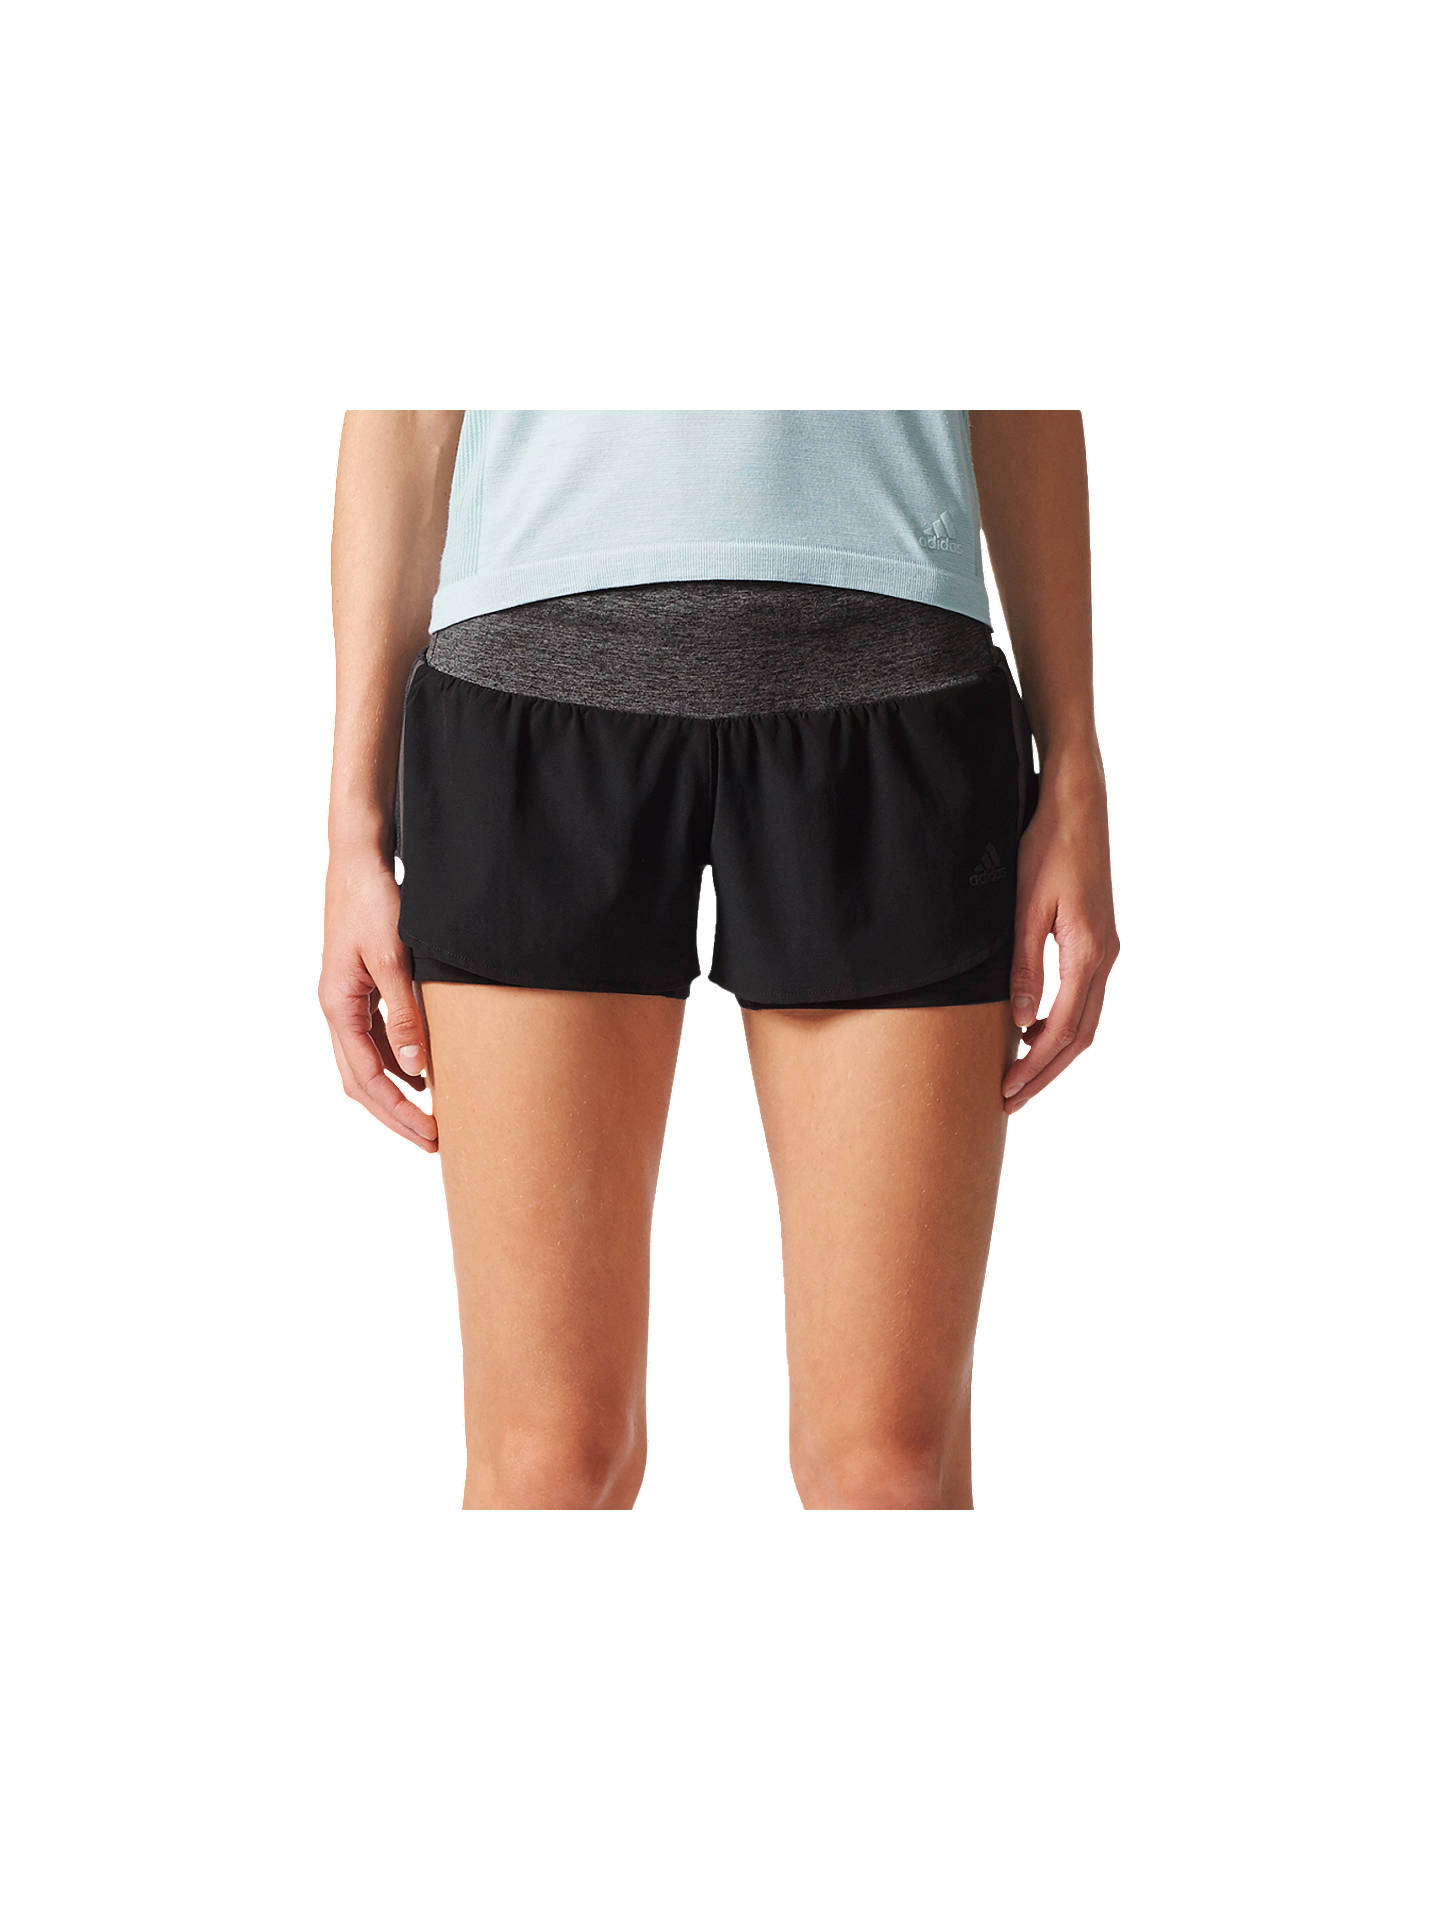 new styles 13118 f6d99 Buyadidas Ultra Energy Running Shorts, Black, XS Online at johnlewis.com ...